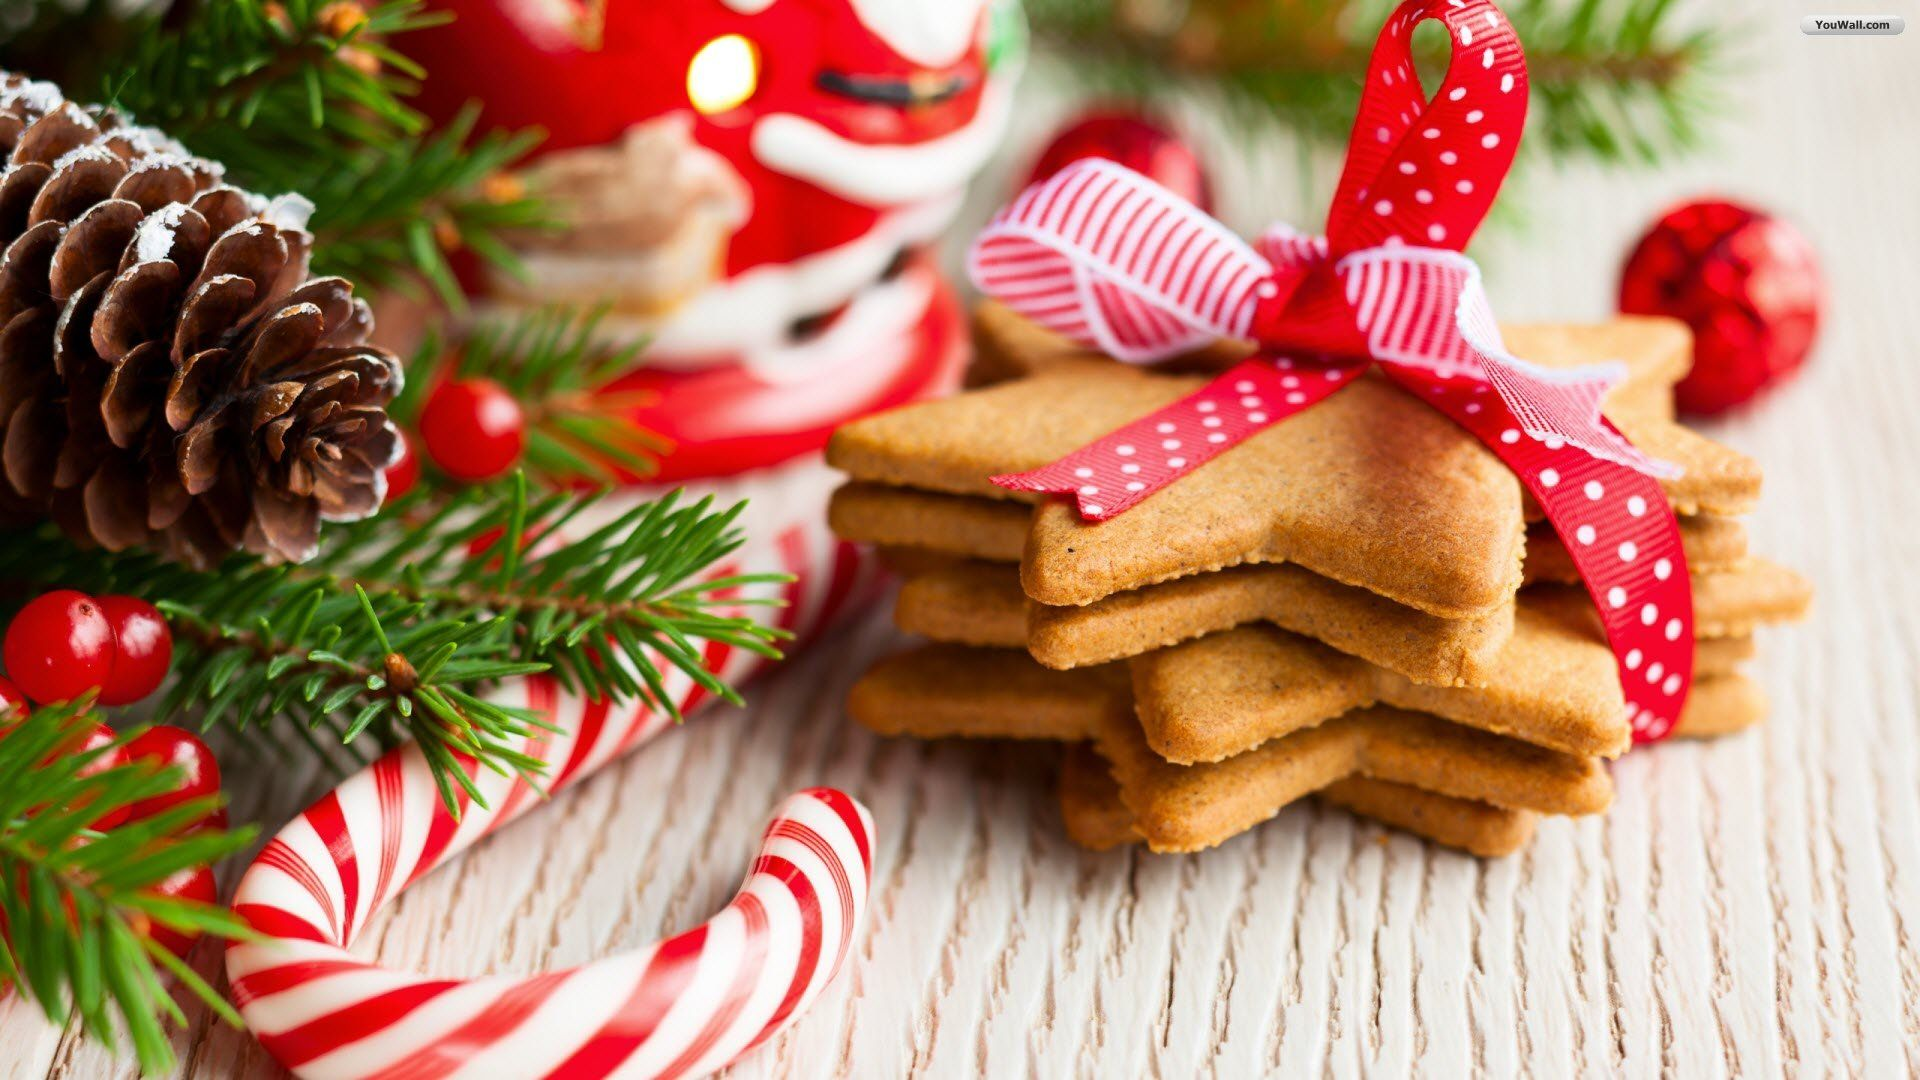 christmas cookies with festive decoration screensavers for iphone wallpaper - Christmas Special